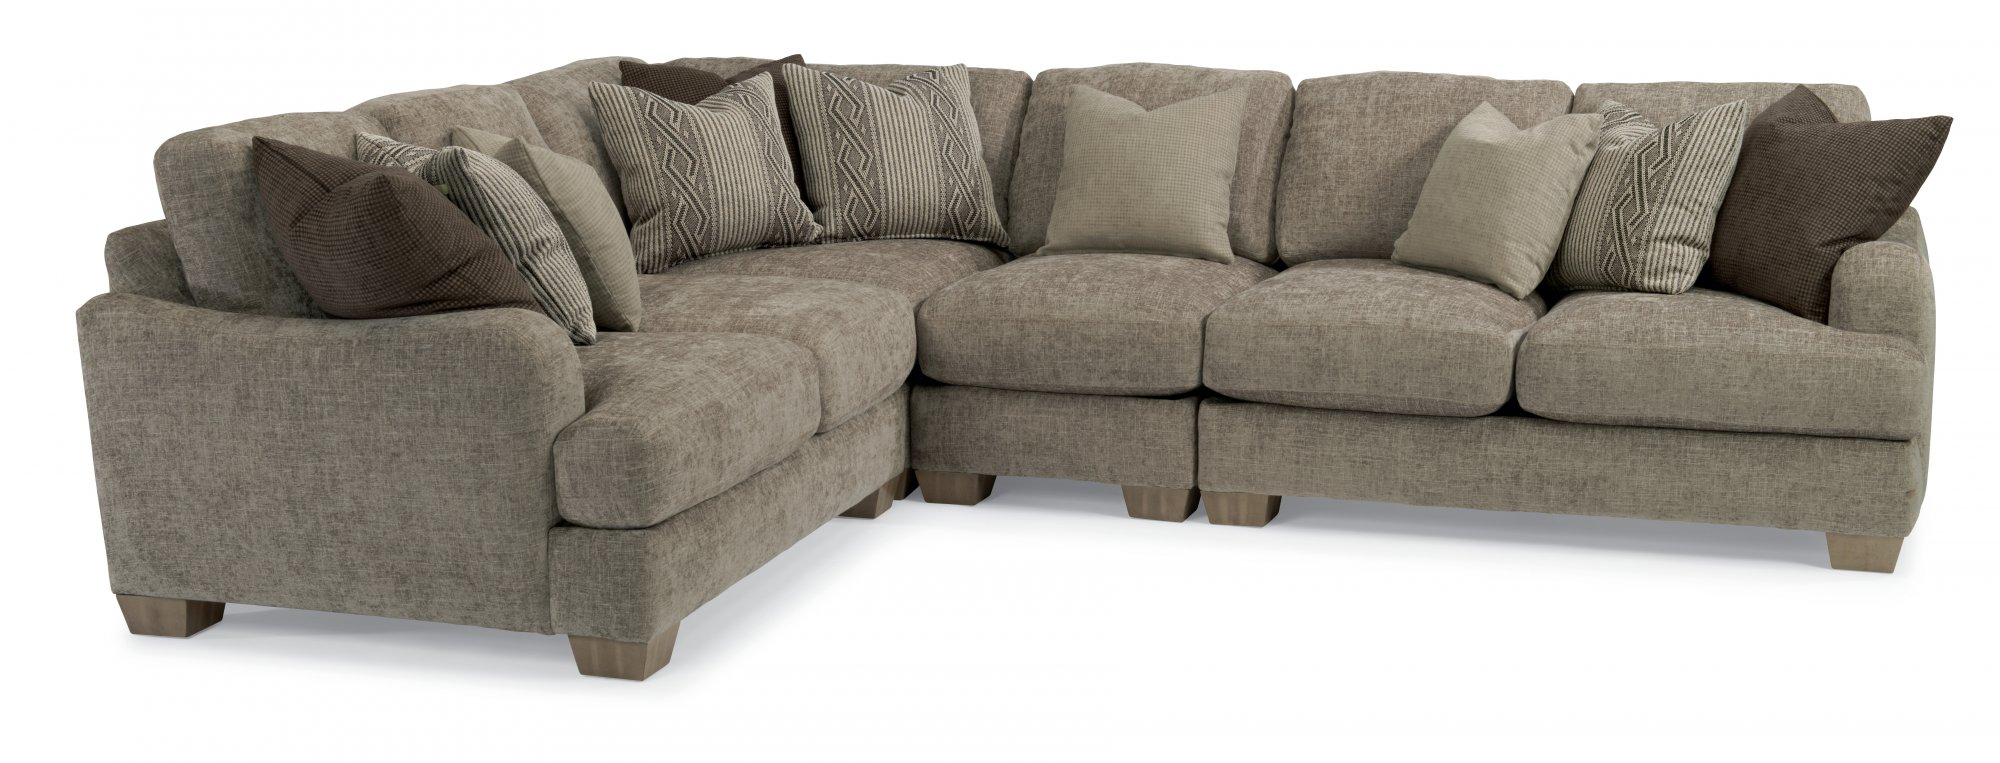 Fabric Sectional  sc 1 st  Flexsteel : flexsteel sectional sofas - Sectionals, Sofas & Couches